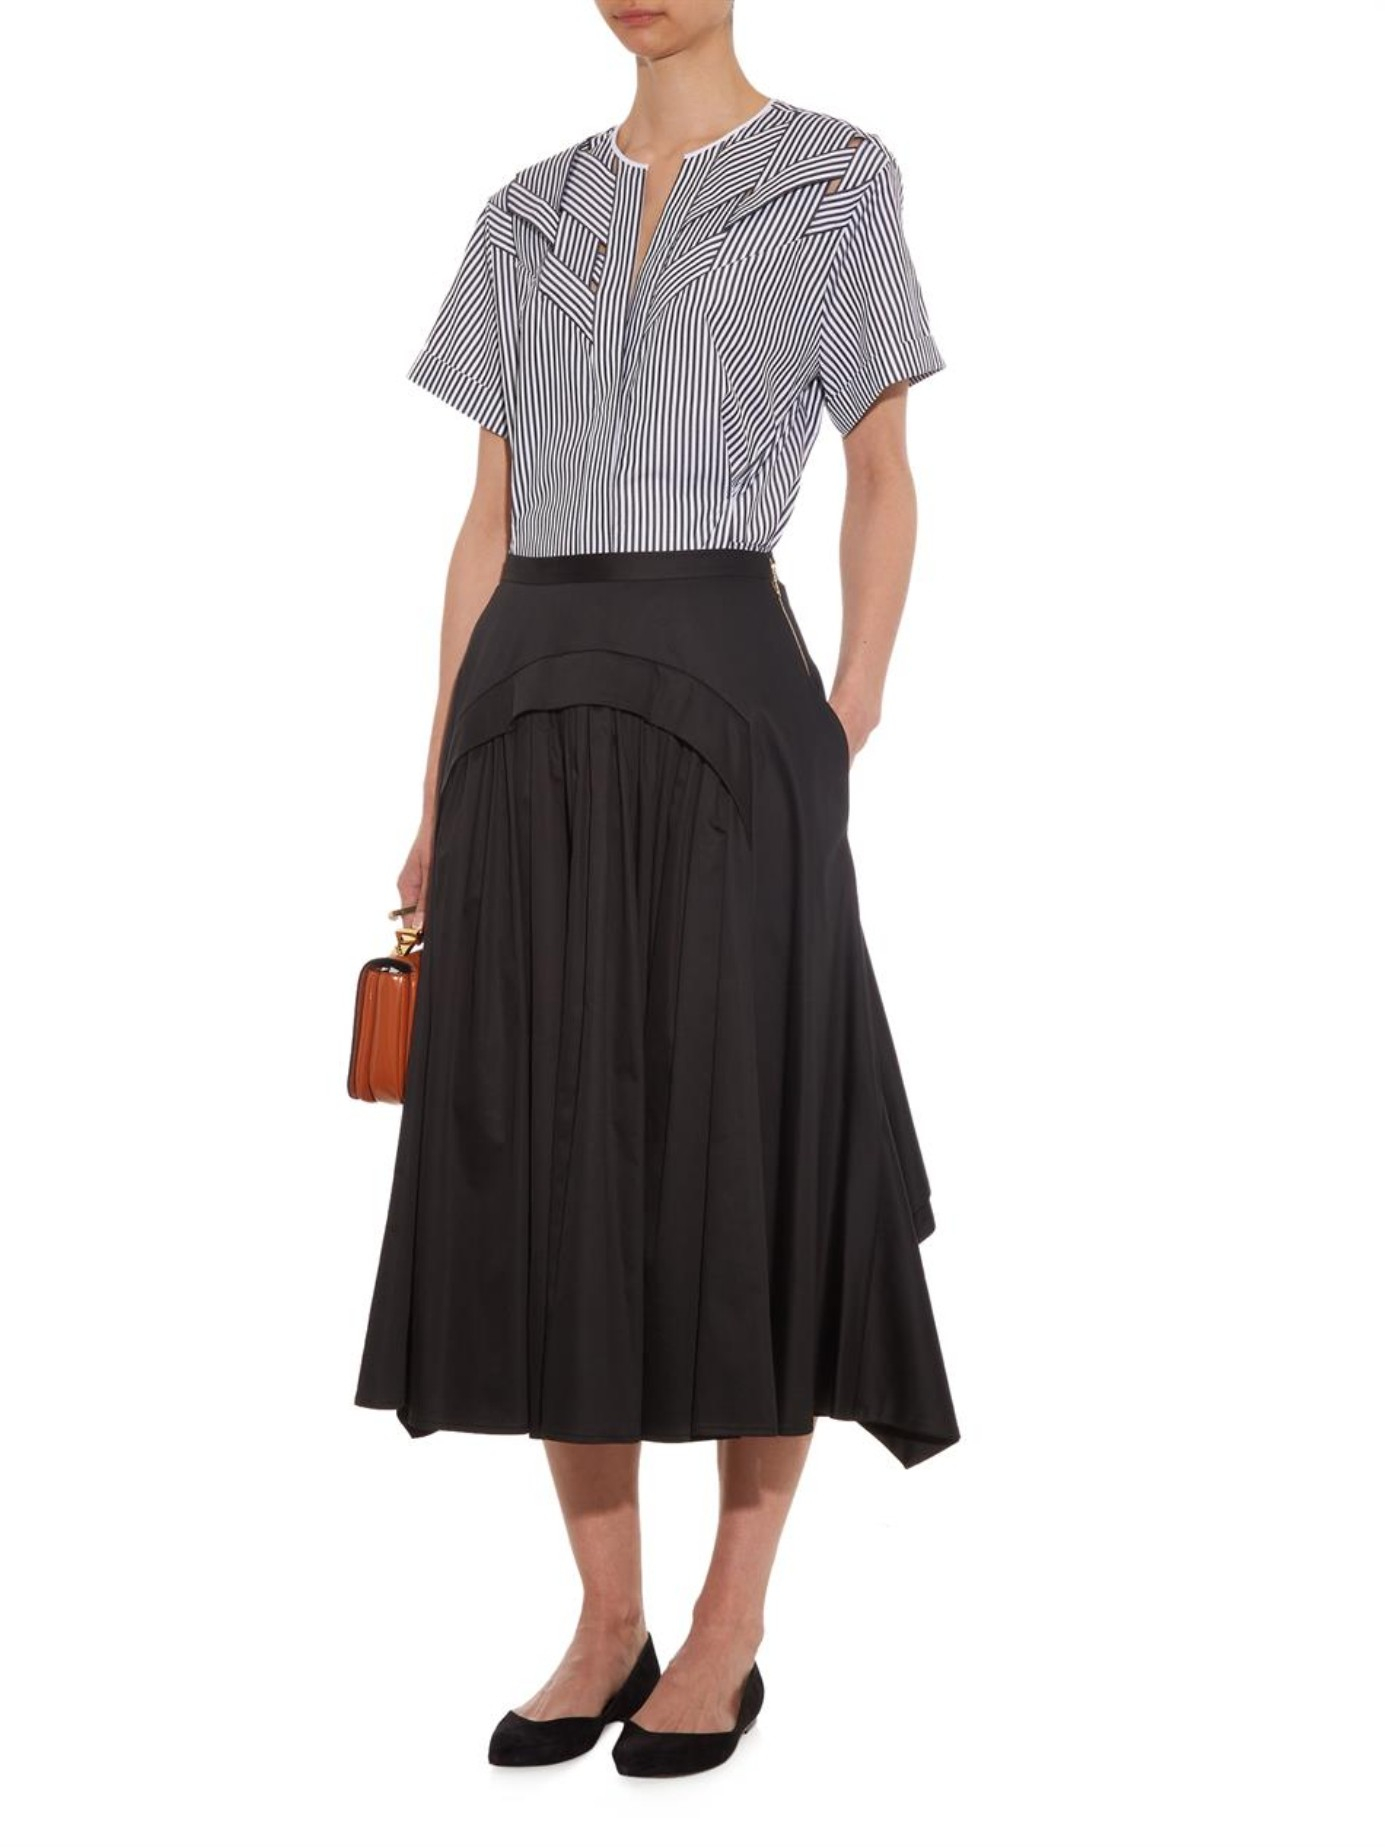 Rochas Gathered And Ruffled Midi Skirt in Black